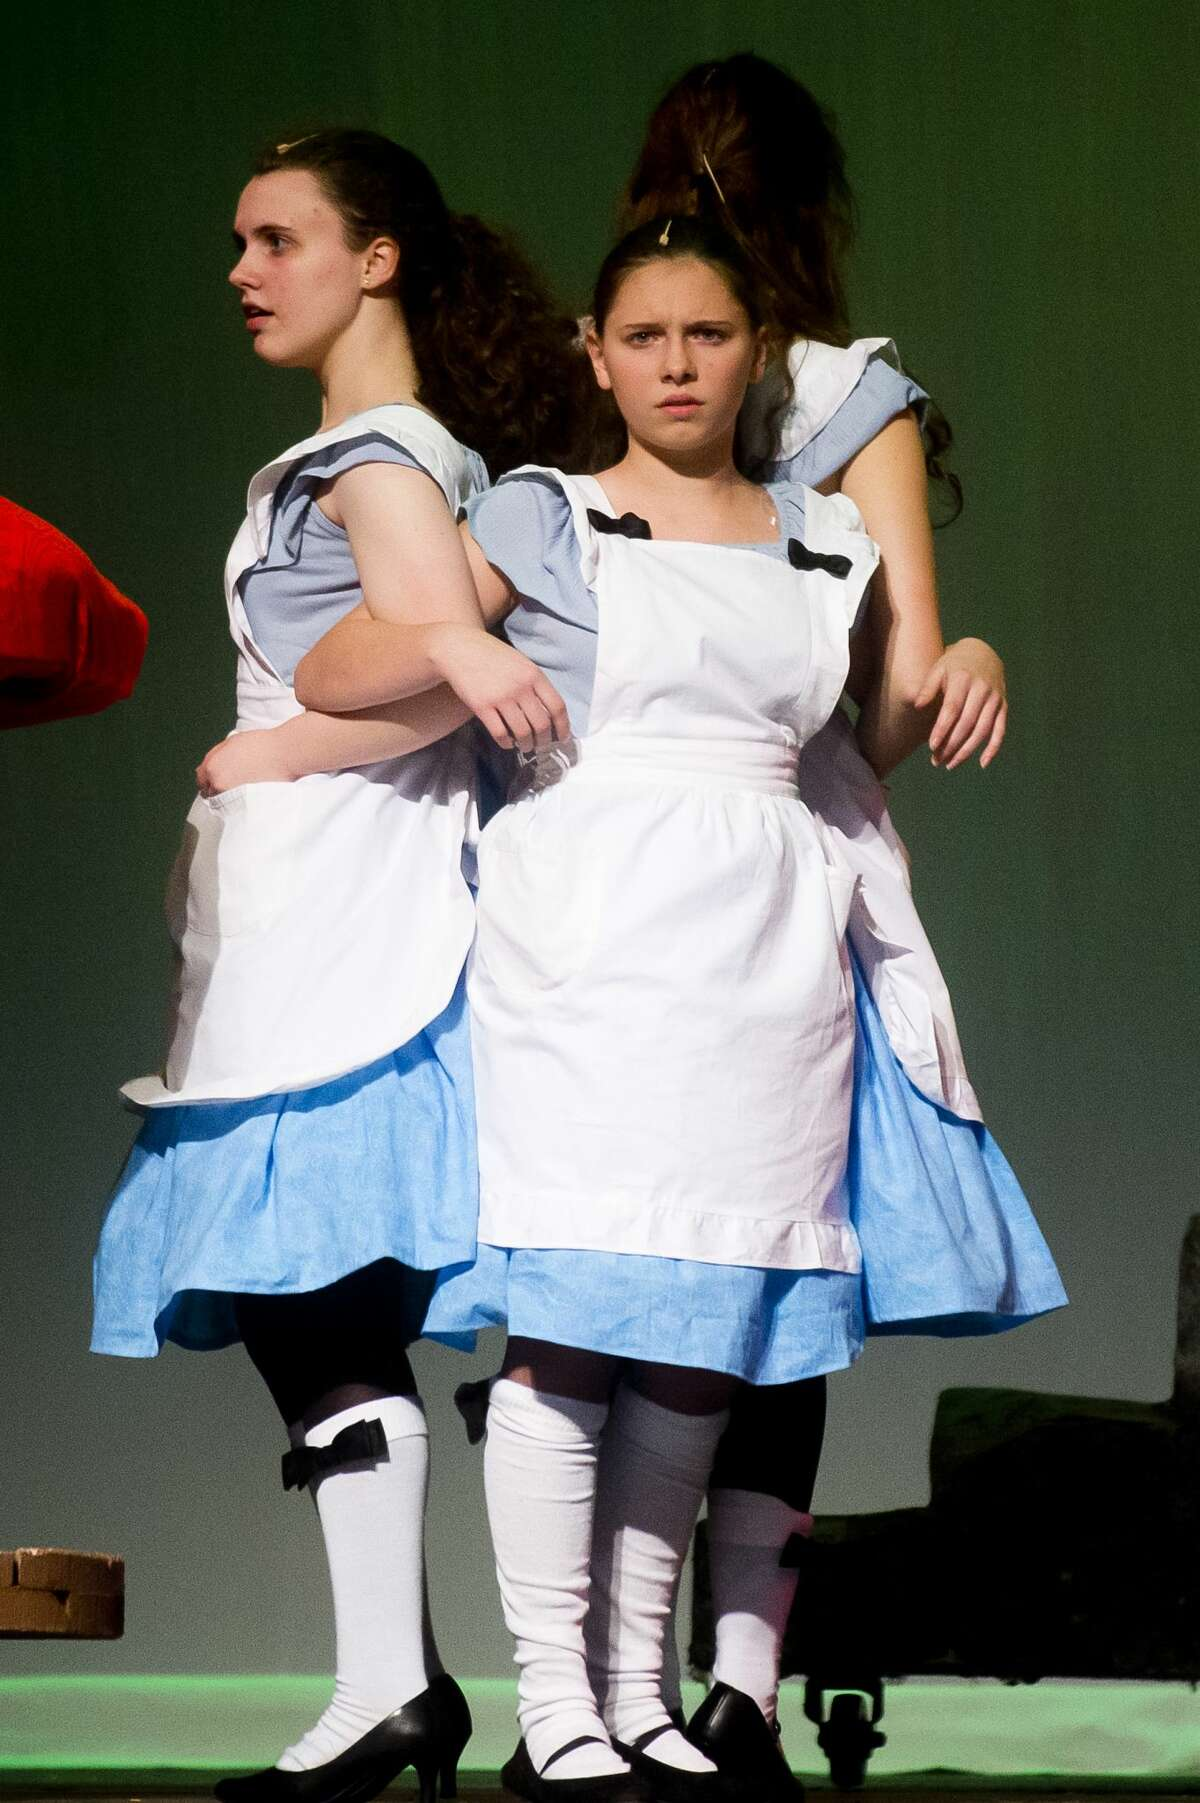 From left, Emma Allington, playing the role of Alice, Anna Stolz, playing the role of Small Alice, and Maggie Reed, playing the role of Tall Alice, act out a scene during a dress rehearsal on Wednesday, Nov. 15, 2017 for H. H. Dow High School's production of Adventures in Wonderland, which opened Thursday evening and continues at 7 p.m. Friday and Saturday, with a 3 p.m. Saturday matinee. (Katy Kildee/kkildee@mdn.net)